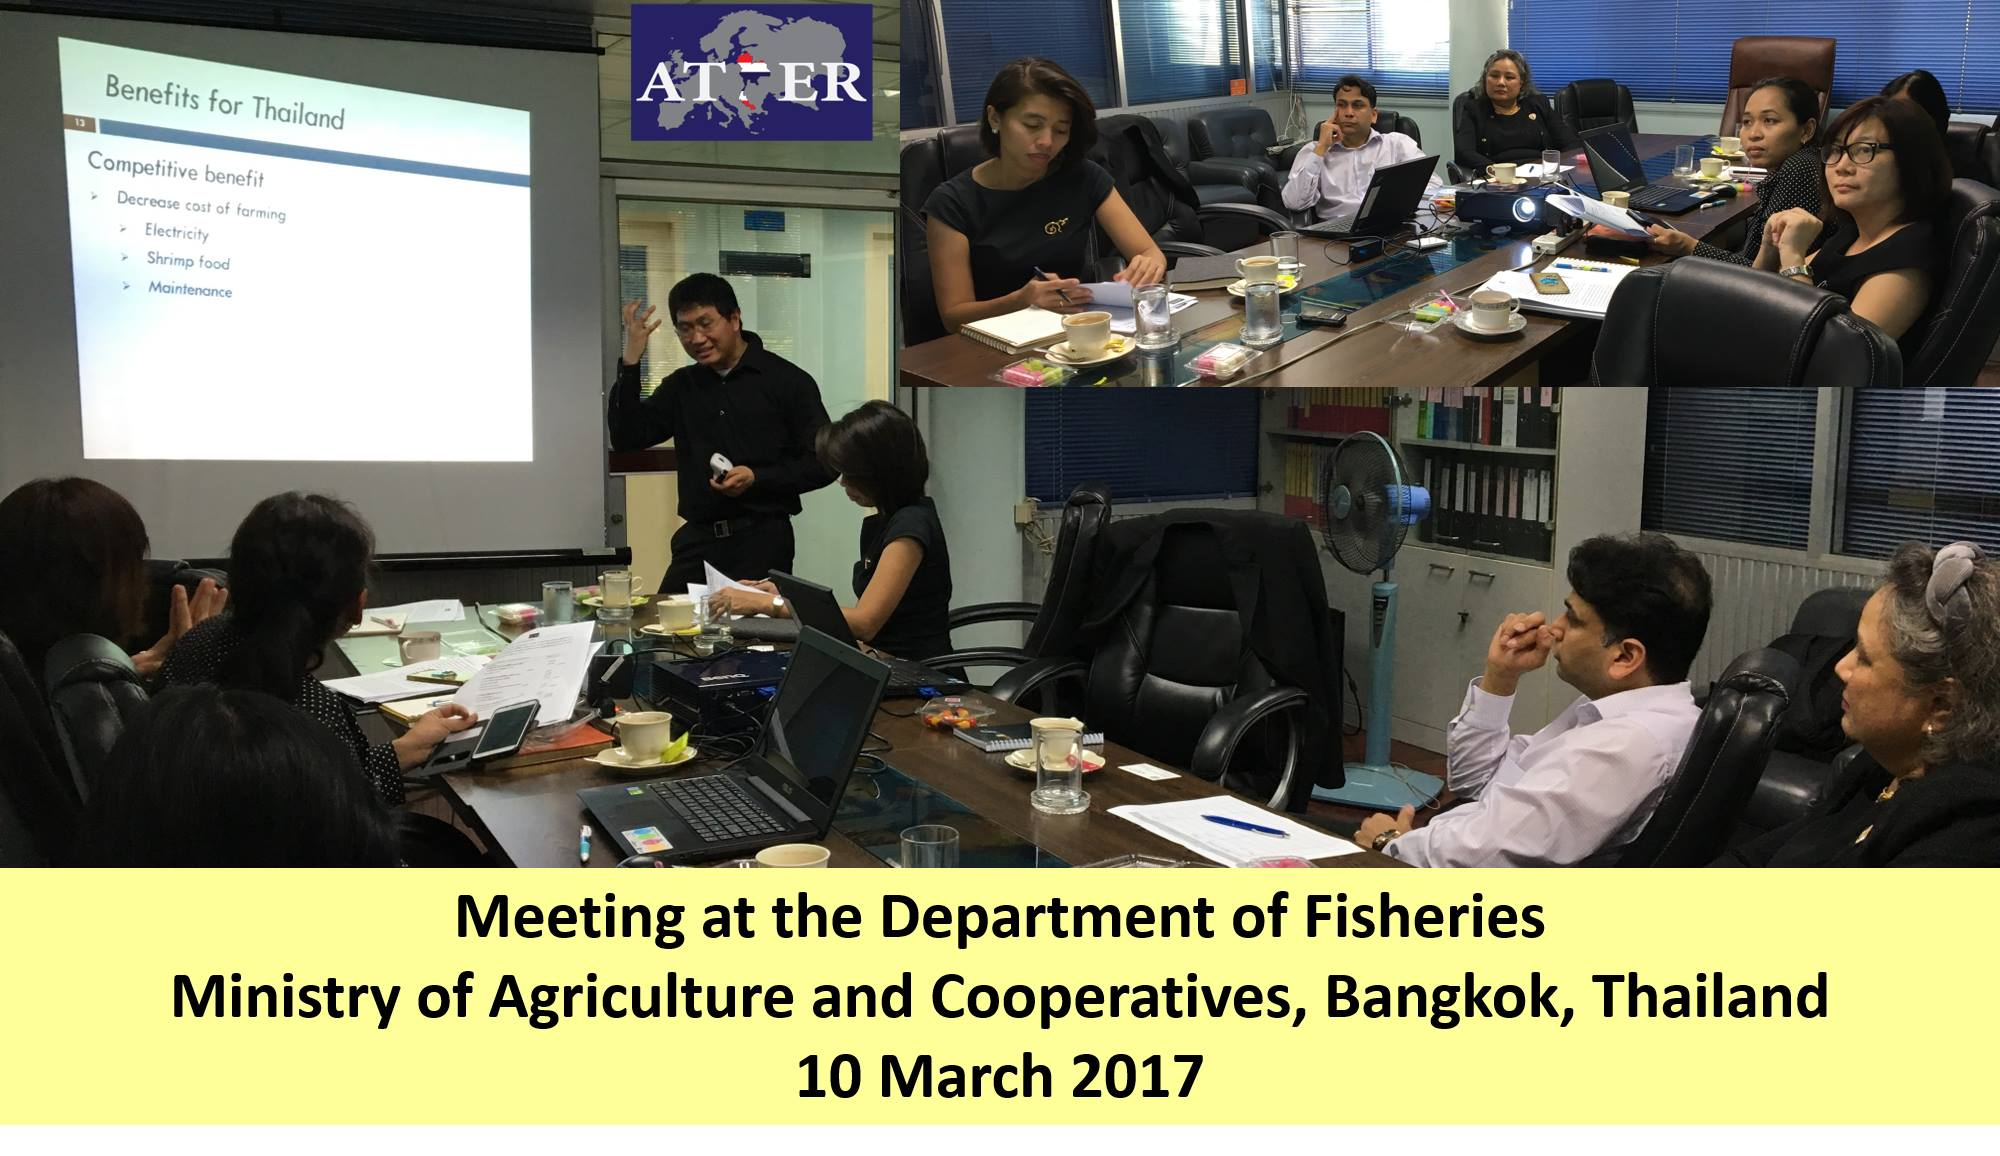 ATPER_Dept_Fisheries_2017-03-10